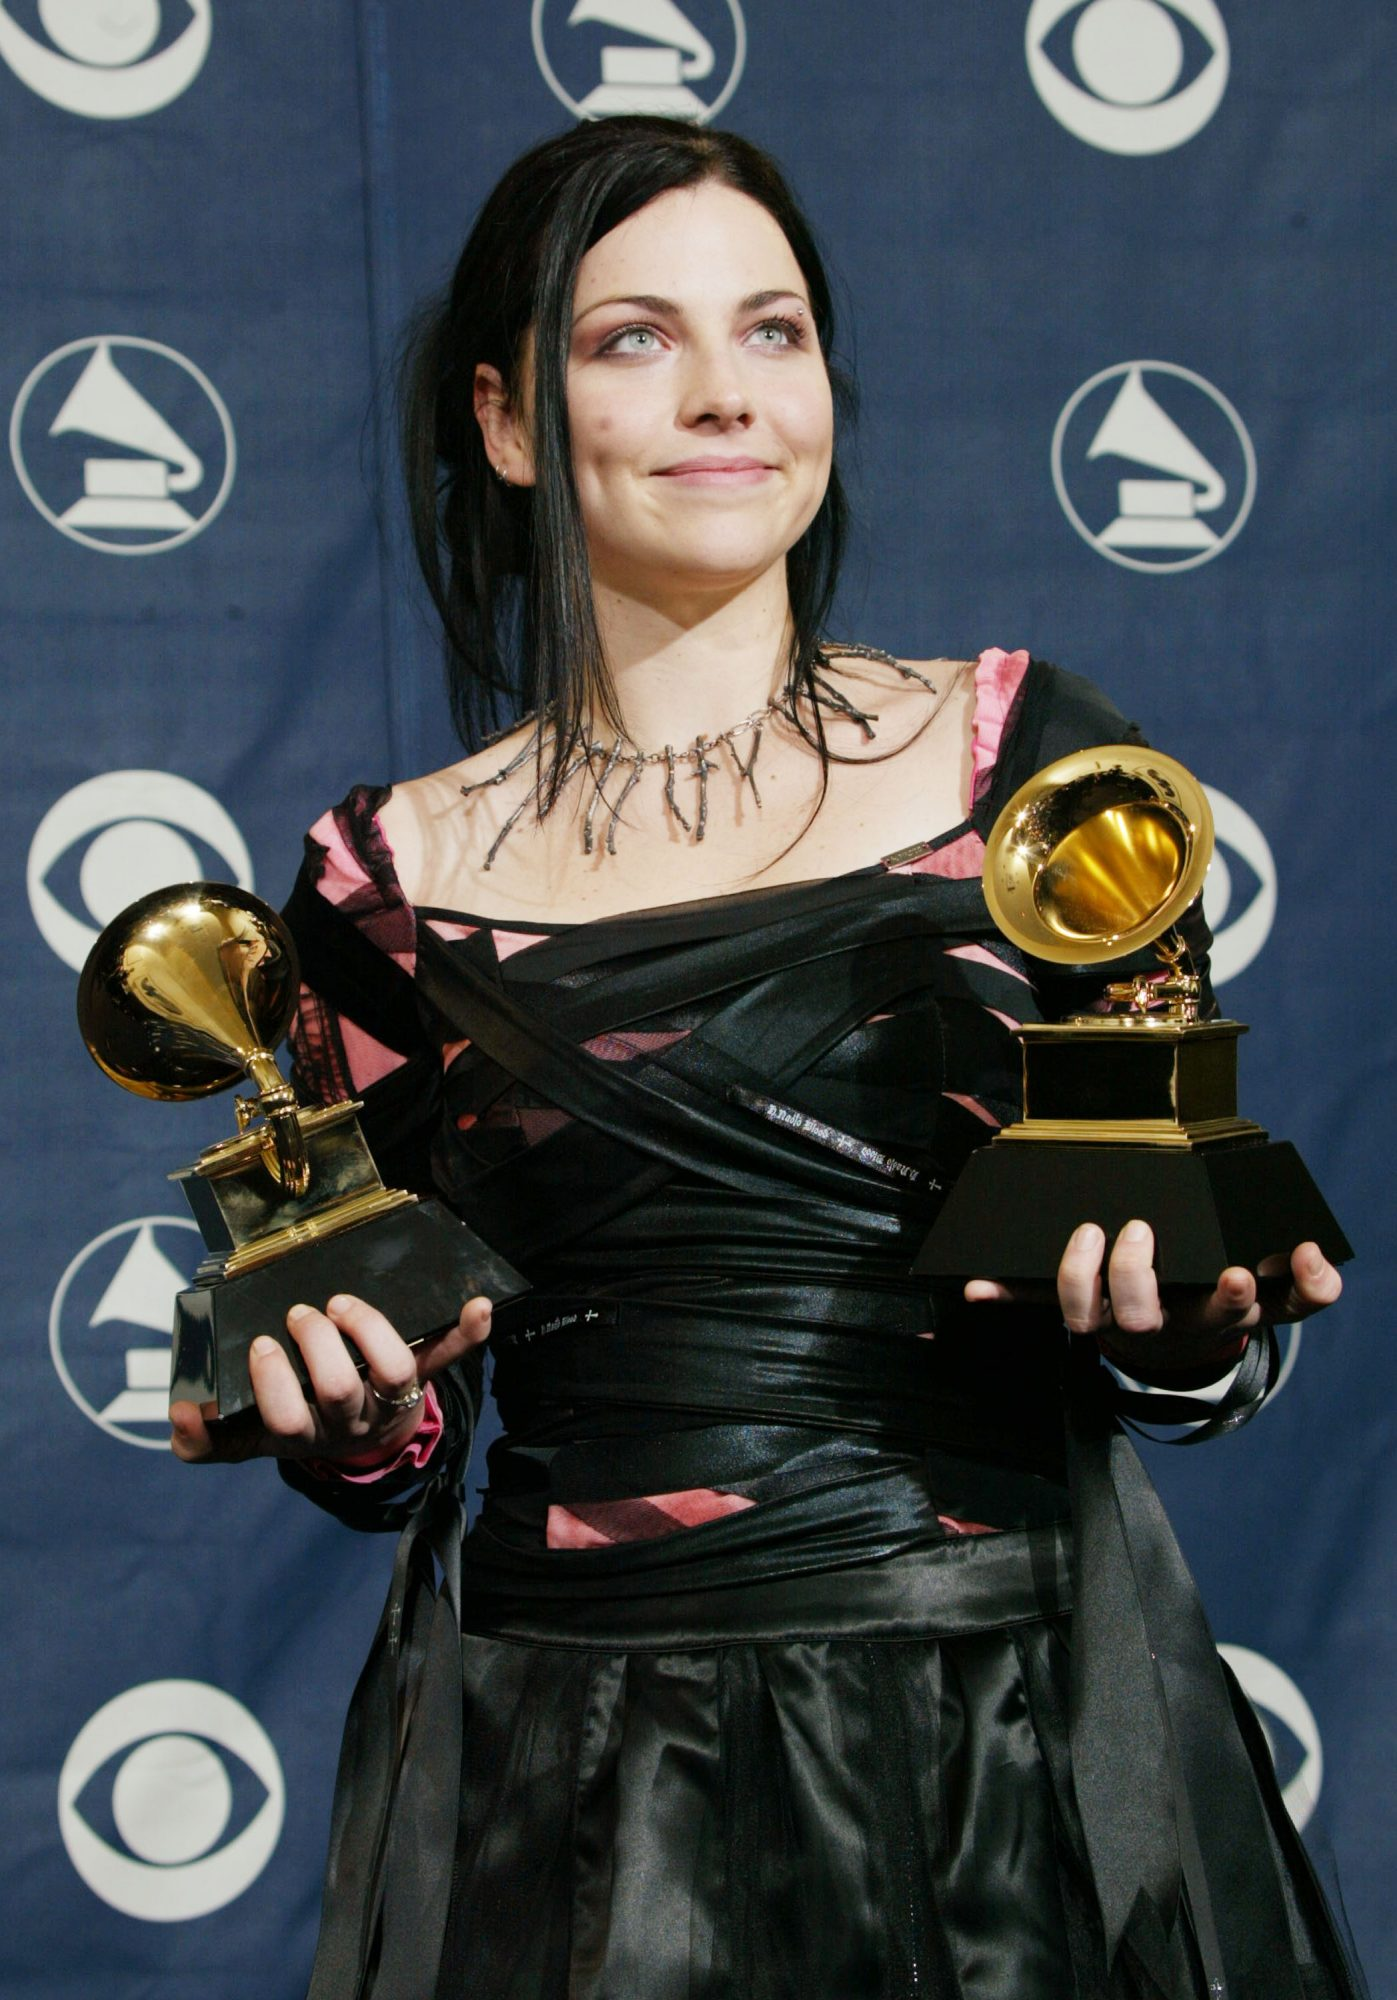 amy lee of evanescence in 2004